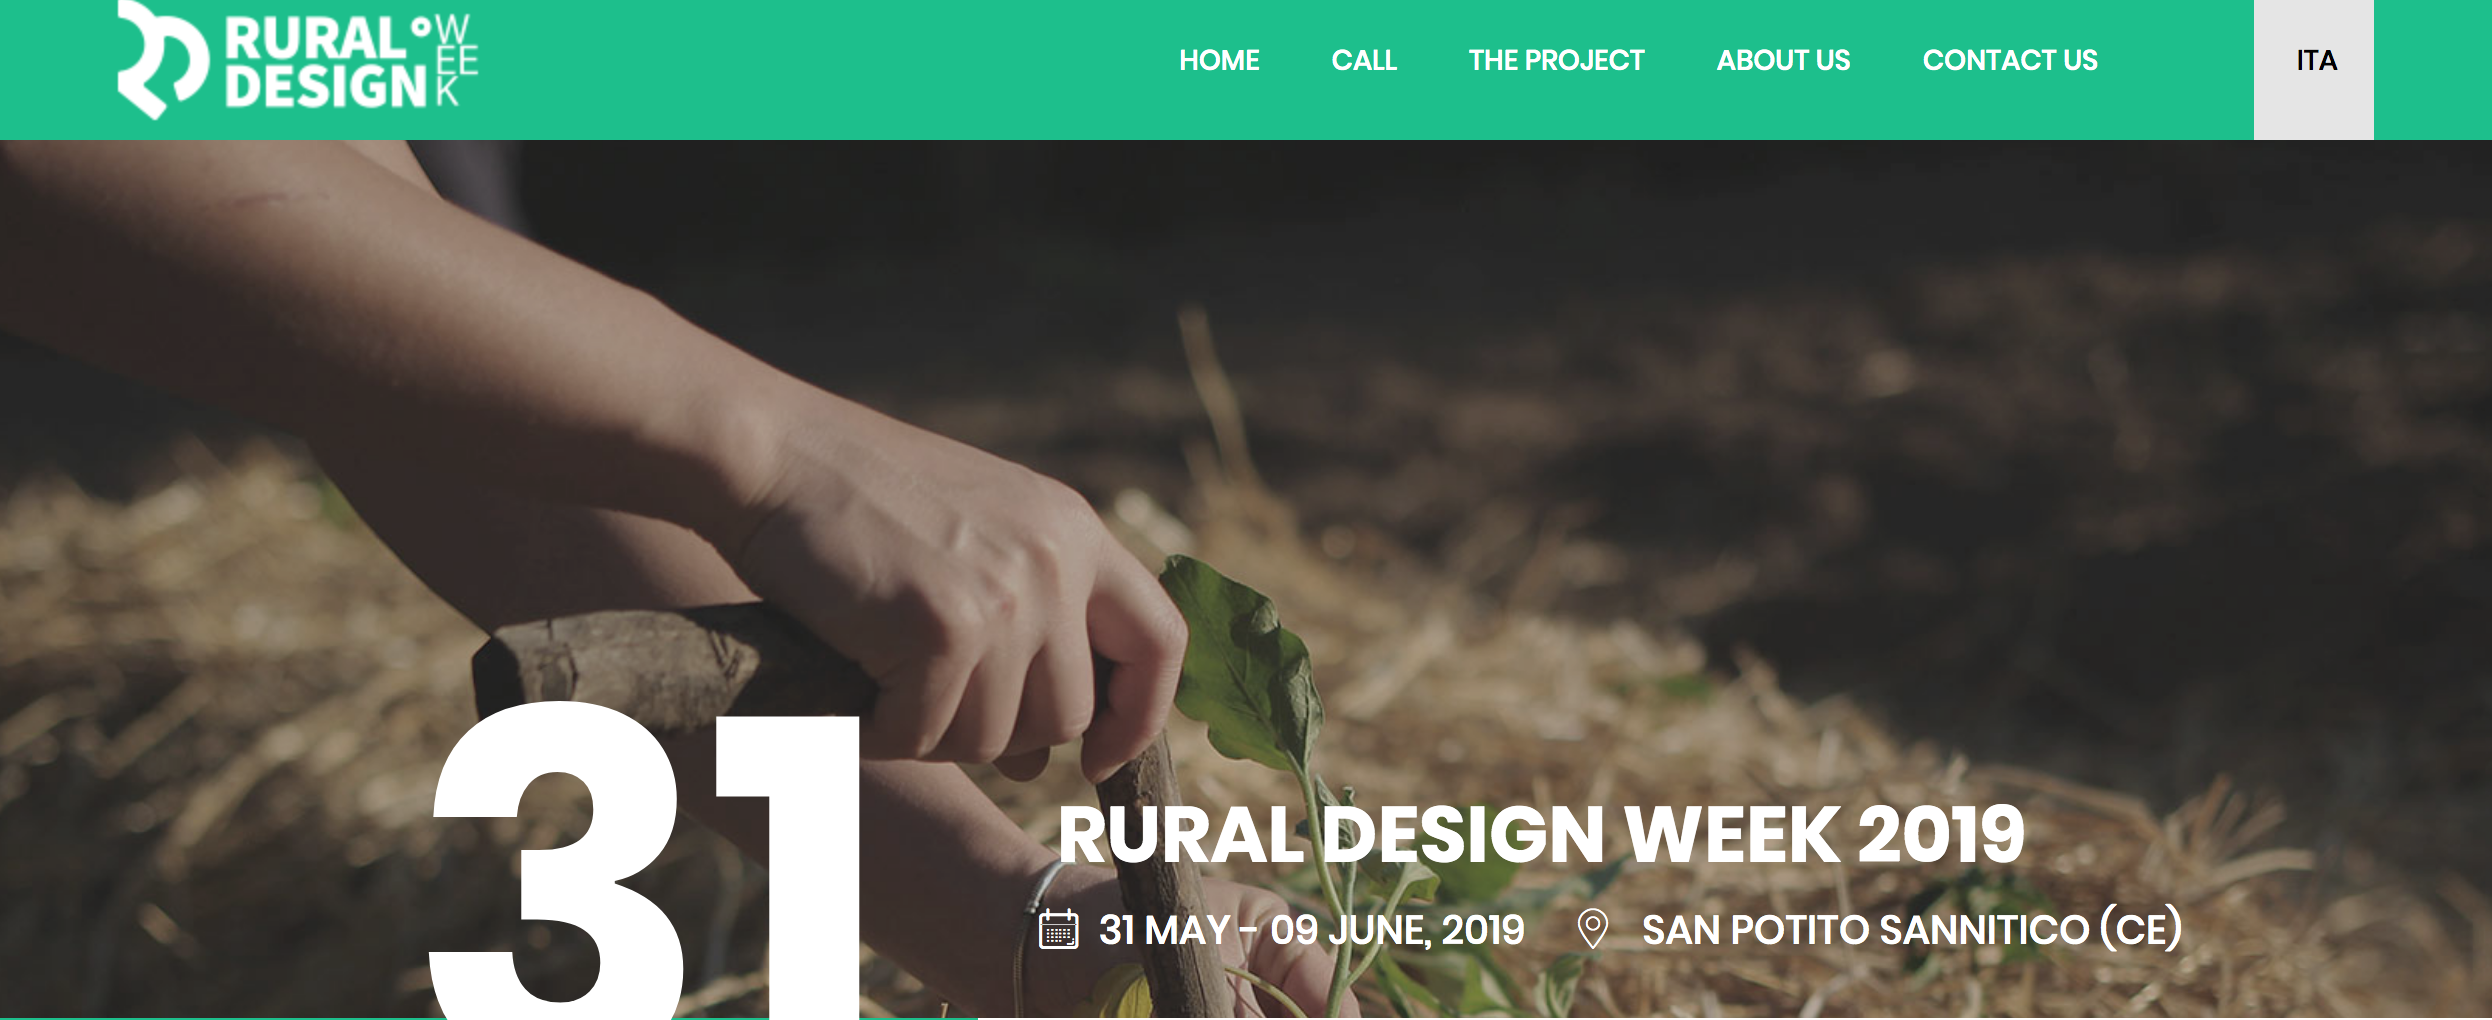 RDW 2019  https://www.ruraldesignweek.com/